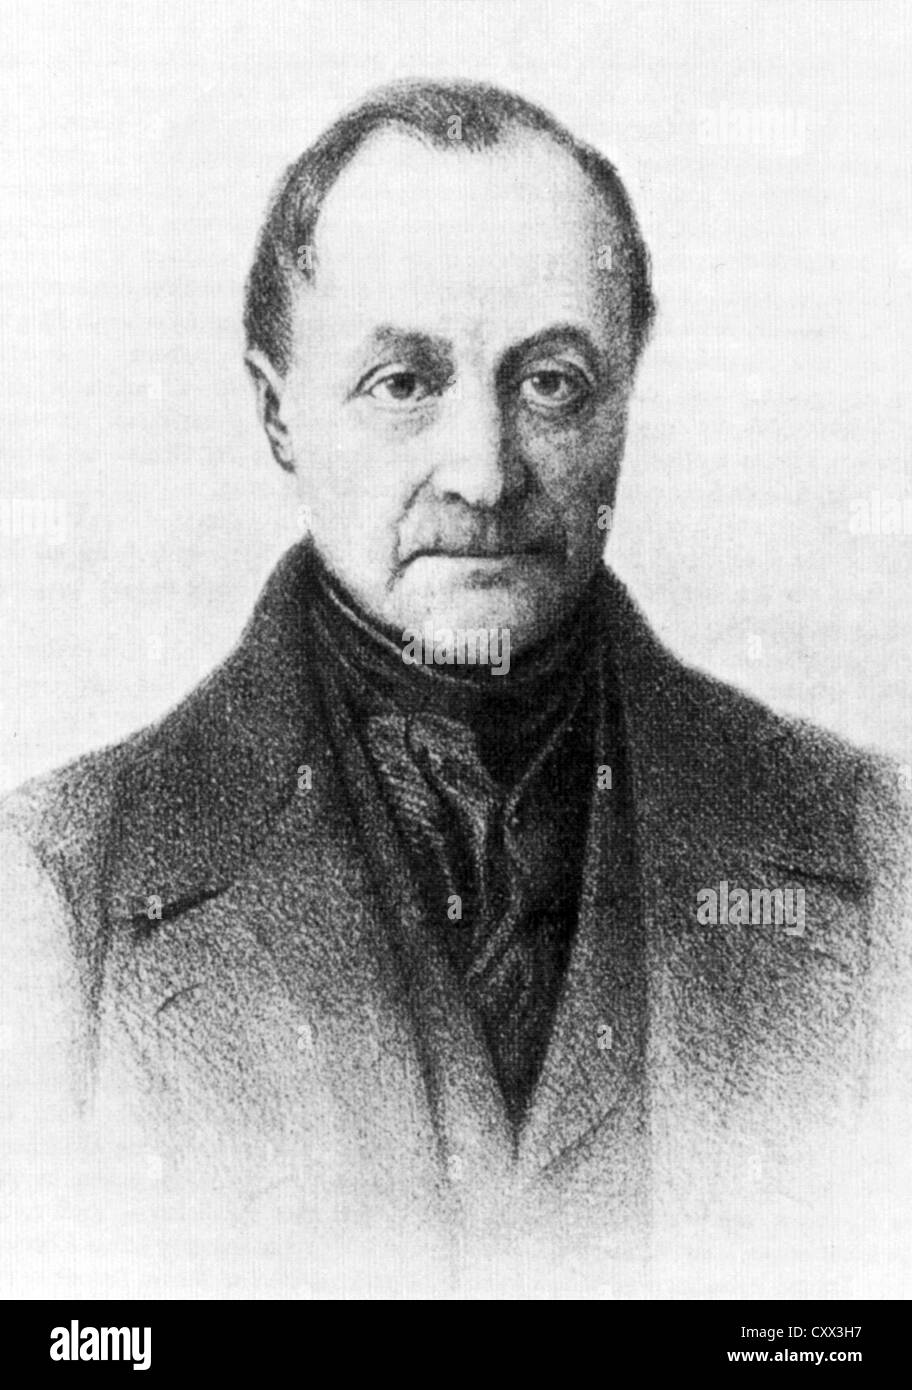 AUGUSTE COMTE (1798-1857) French philosopher - Stock Image